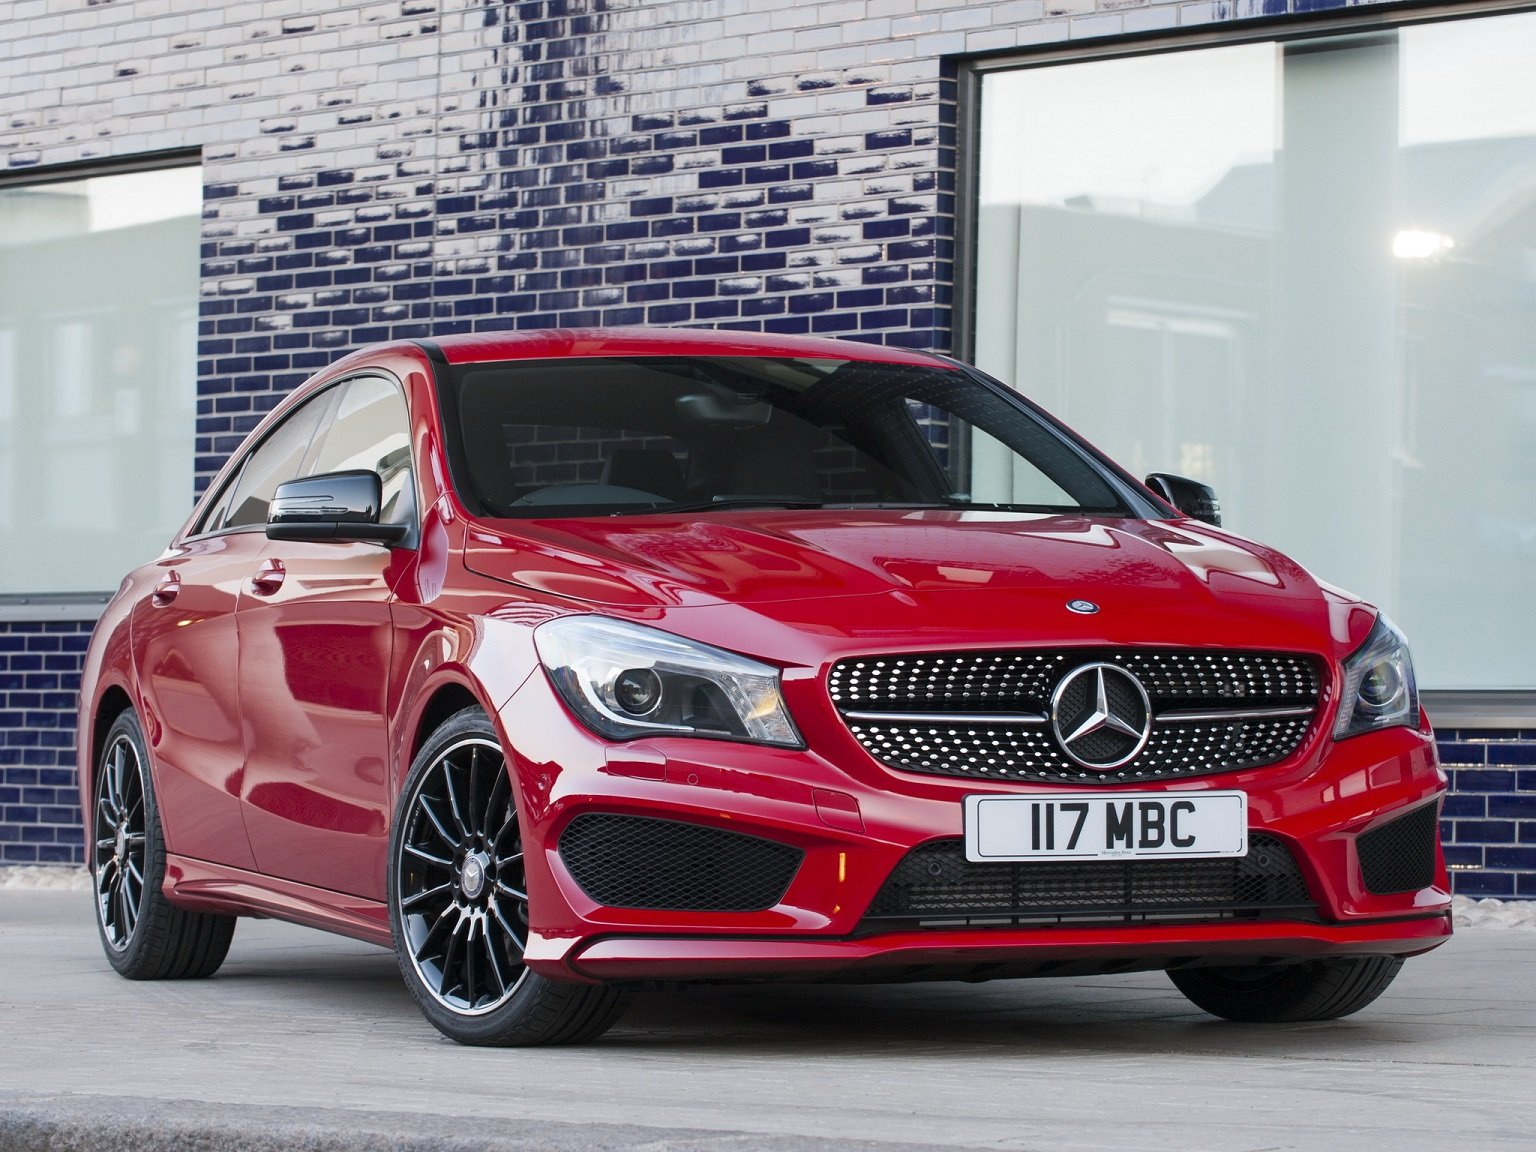 mercedes benz cla 220 cdi amg sports package uk spec c117 cars red 2013 wallpaper 1536x1152. Black Bedroom Furniture Sets. Home Design Ideas